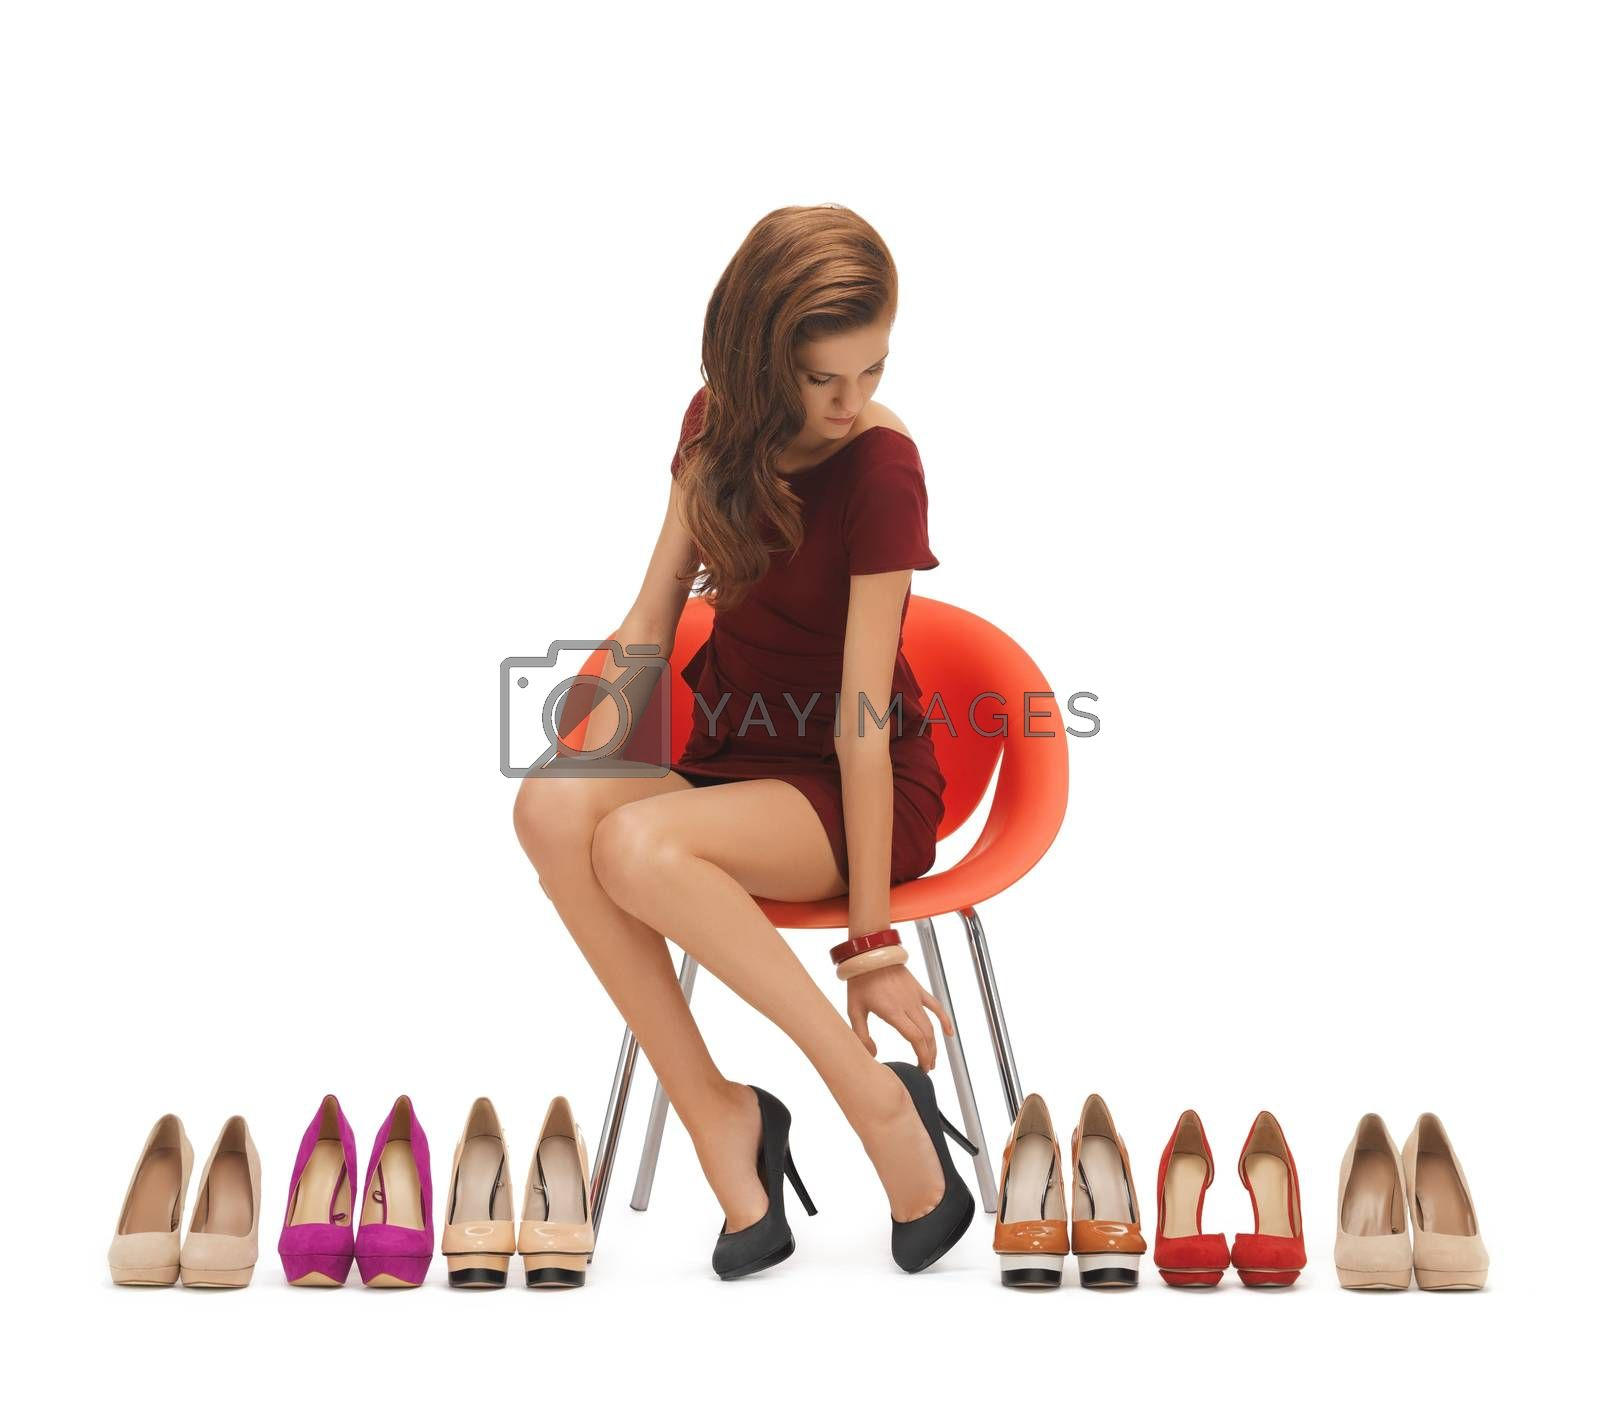 woman trying on high heeled shoes by dolgachov